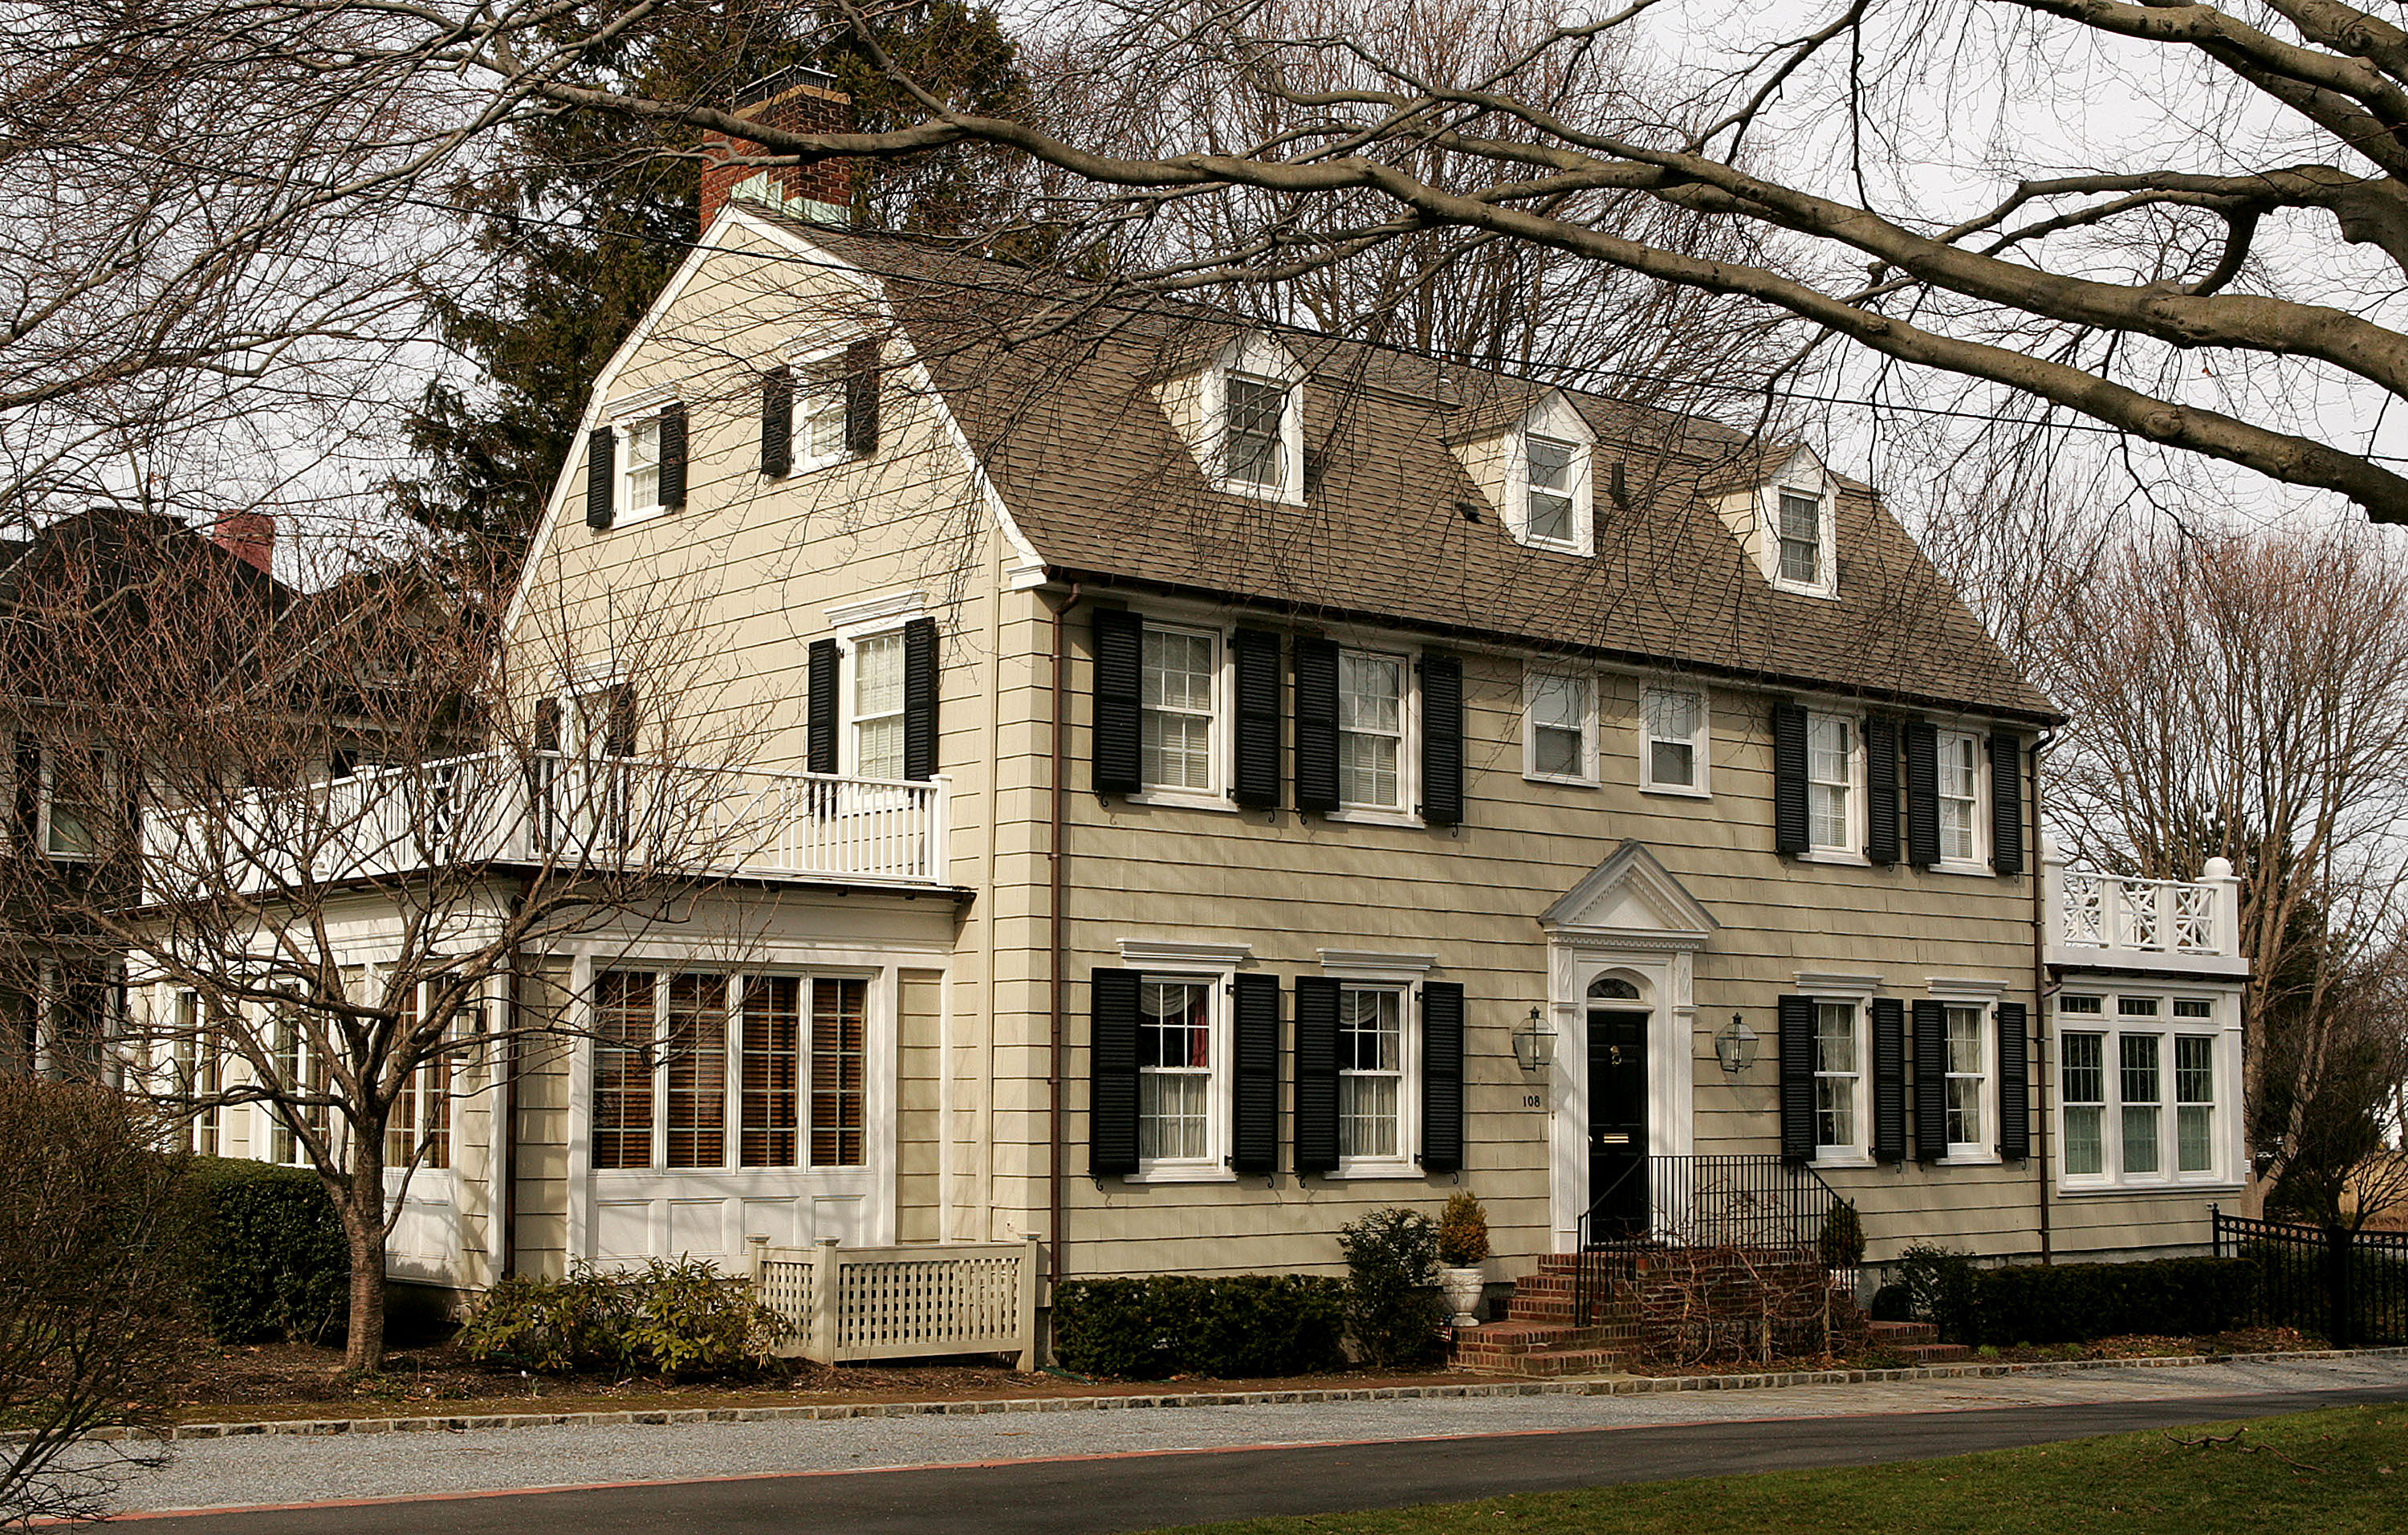 Haunted Houses In Amityville New York